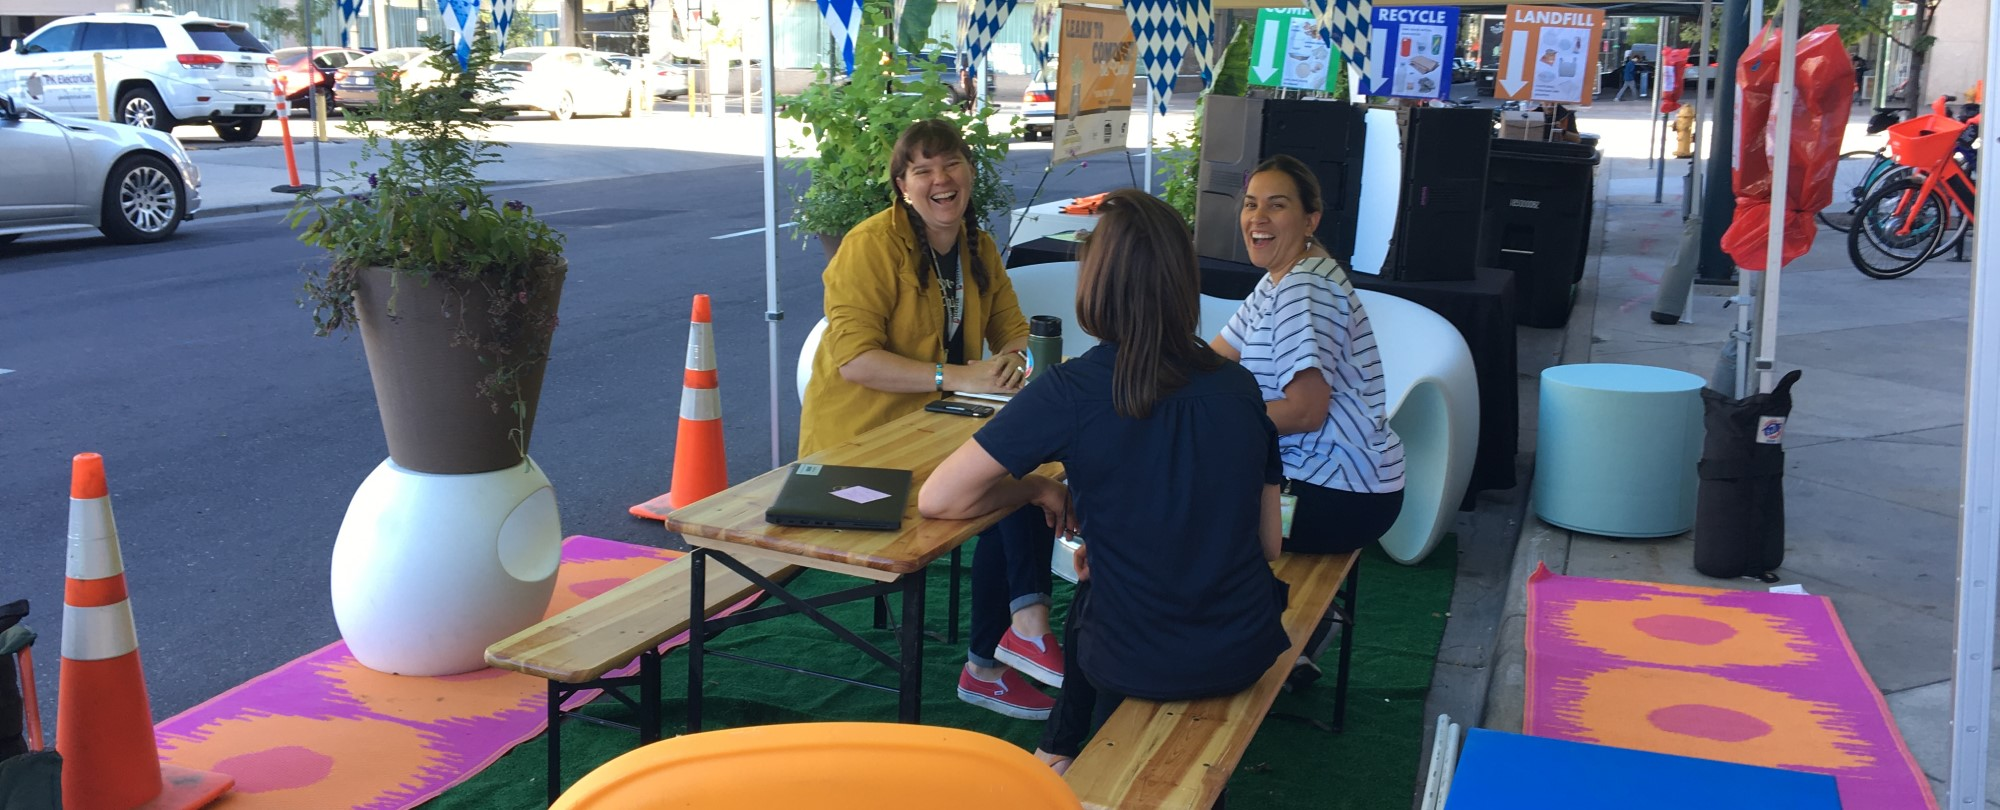 DOTI staff gather at 15th and Court Place to celebrate 2019 Parklet Day